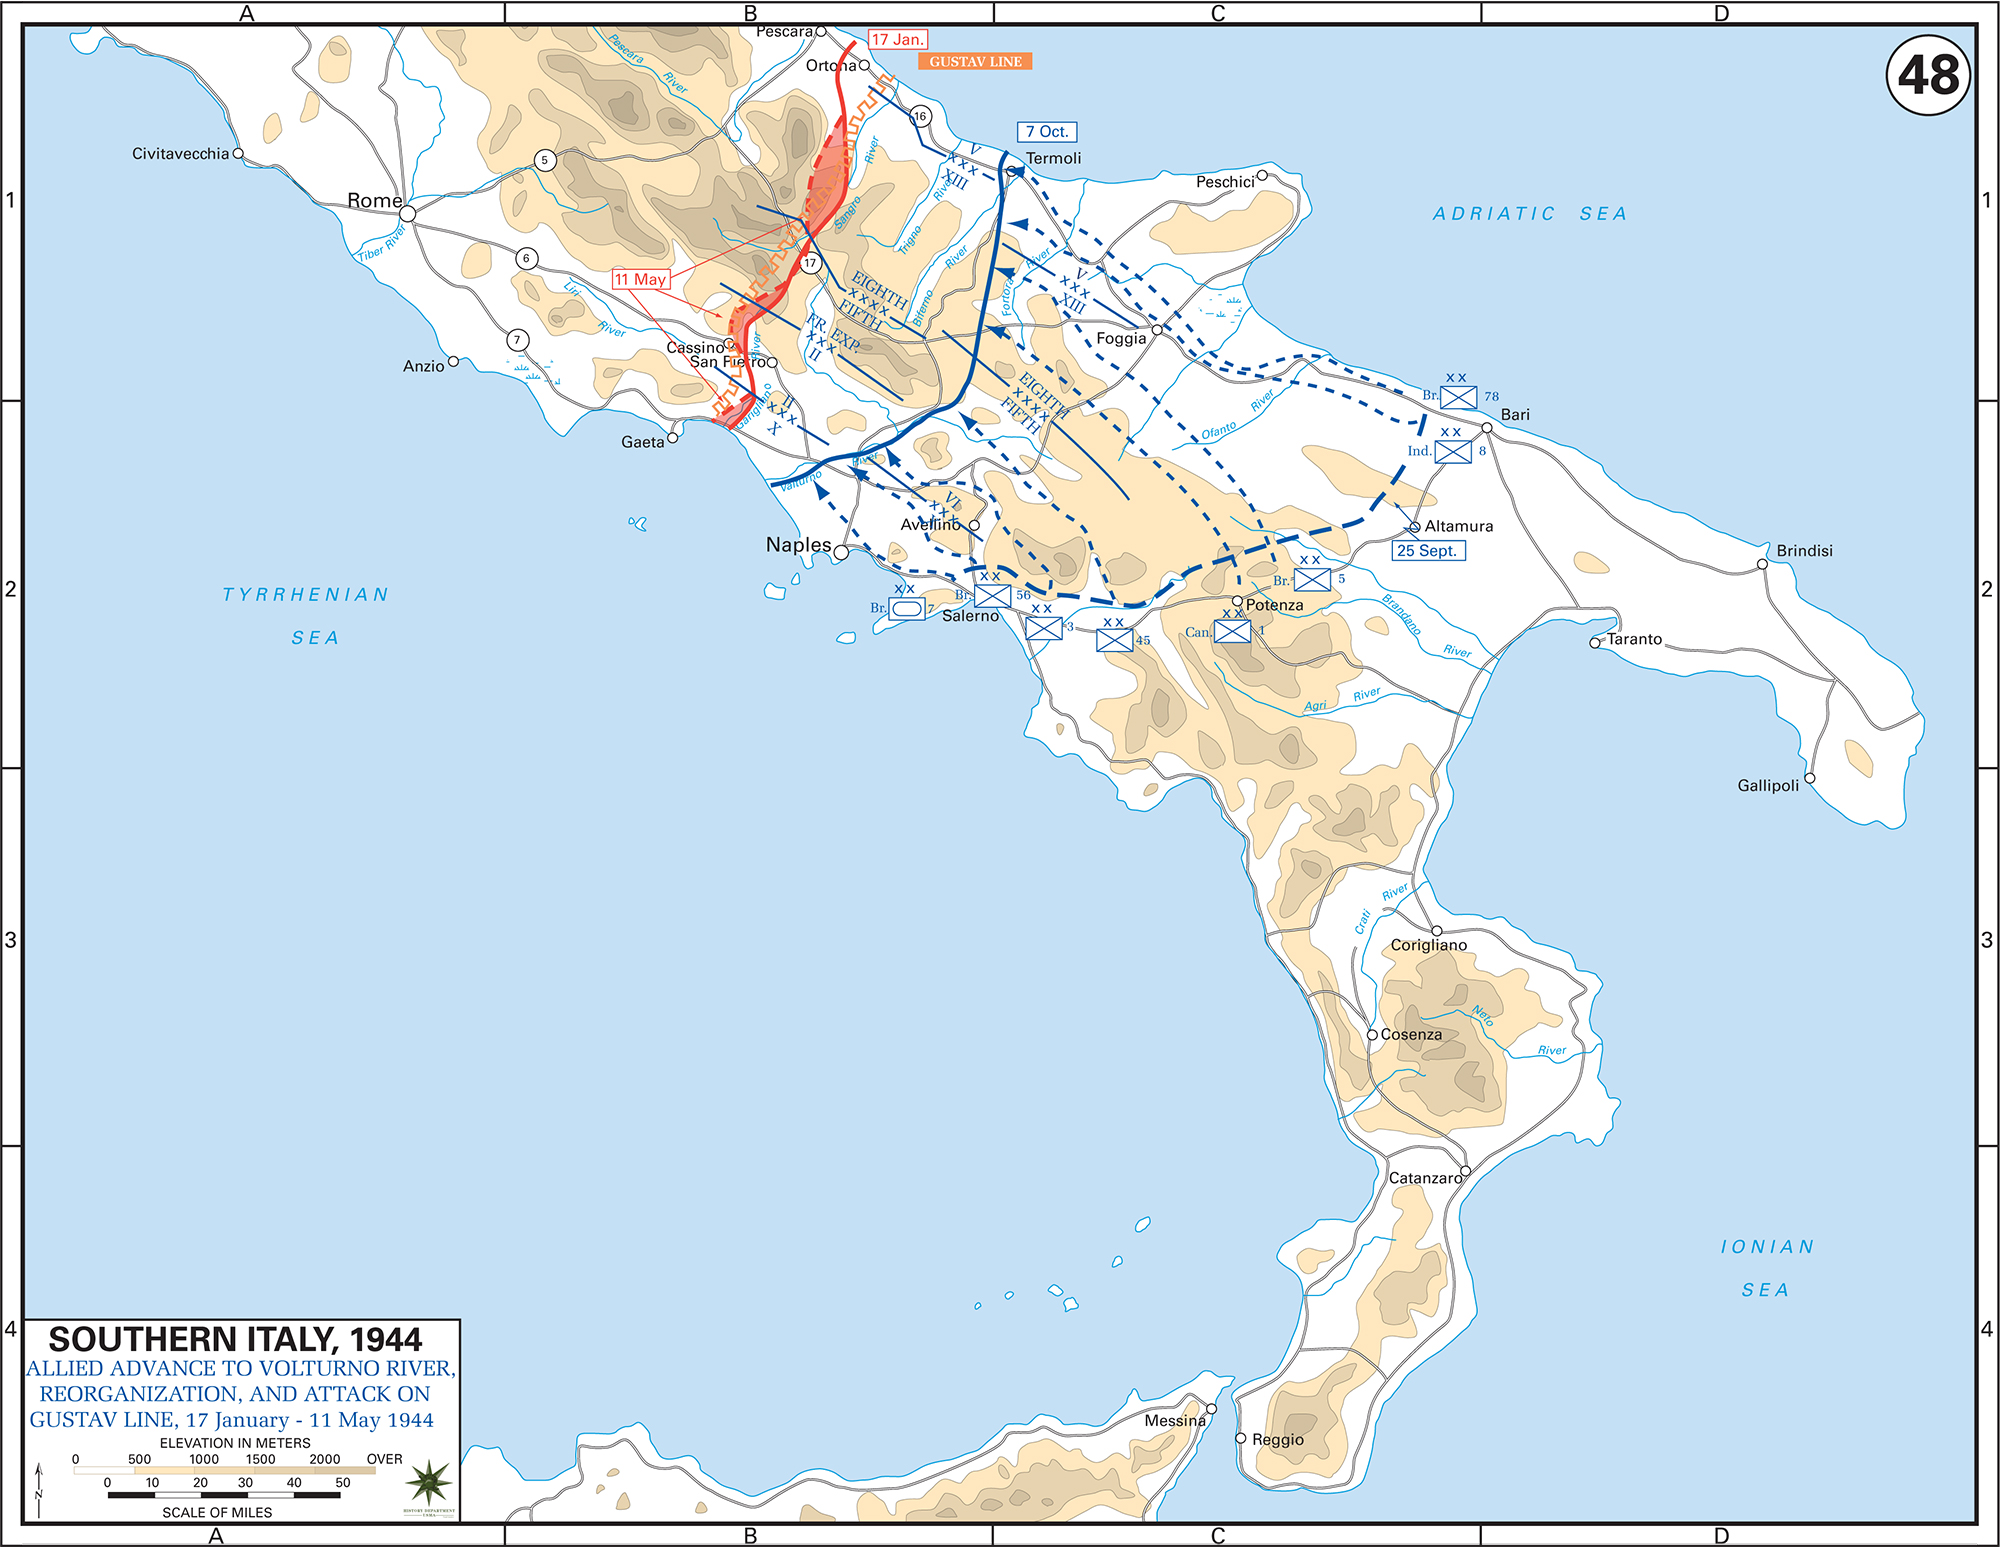 Map of WWII Southern Italy, January 17 - May 11, 1944